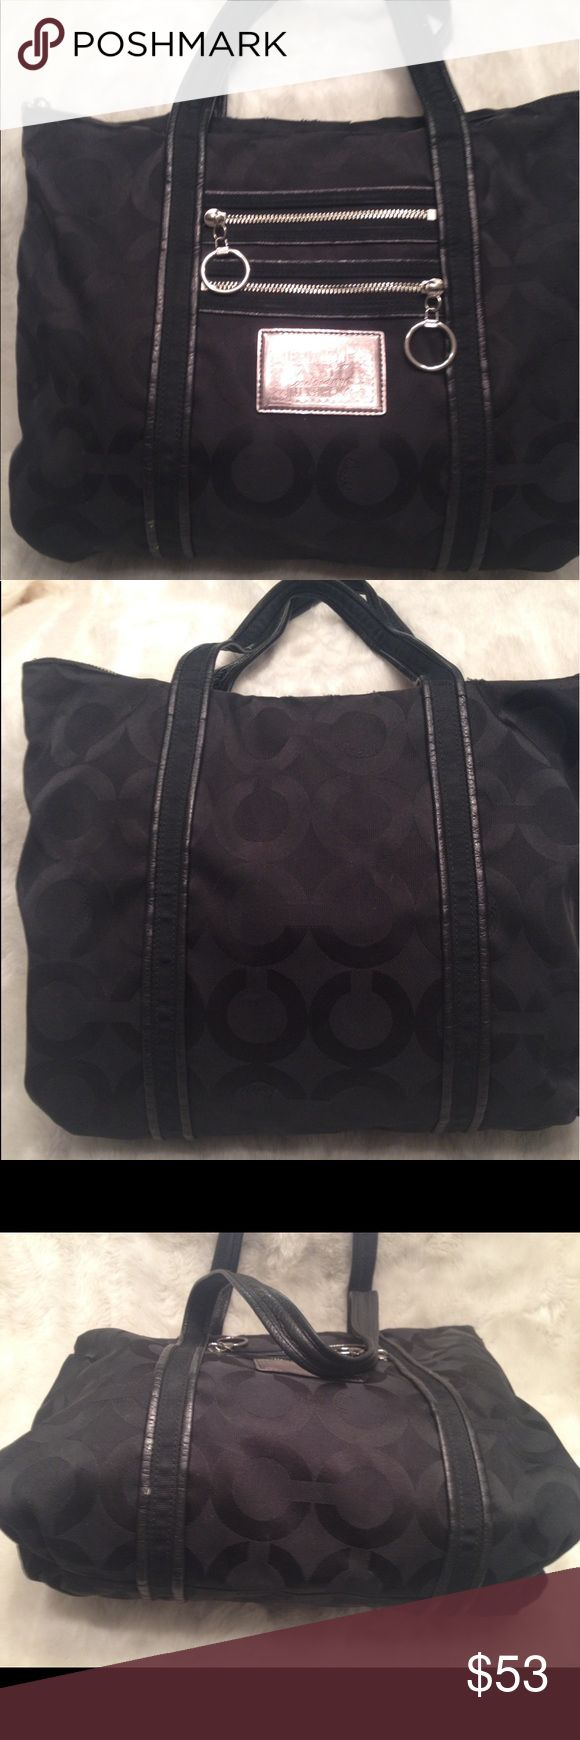 LARGE COACH Poppy Art Tote COACH#H0967-13826. Liner has some water marks and faint stains shown in pic. Good straps. No scuffs and snags. Measures 8x13 Coach Bags Totes